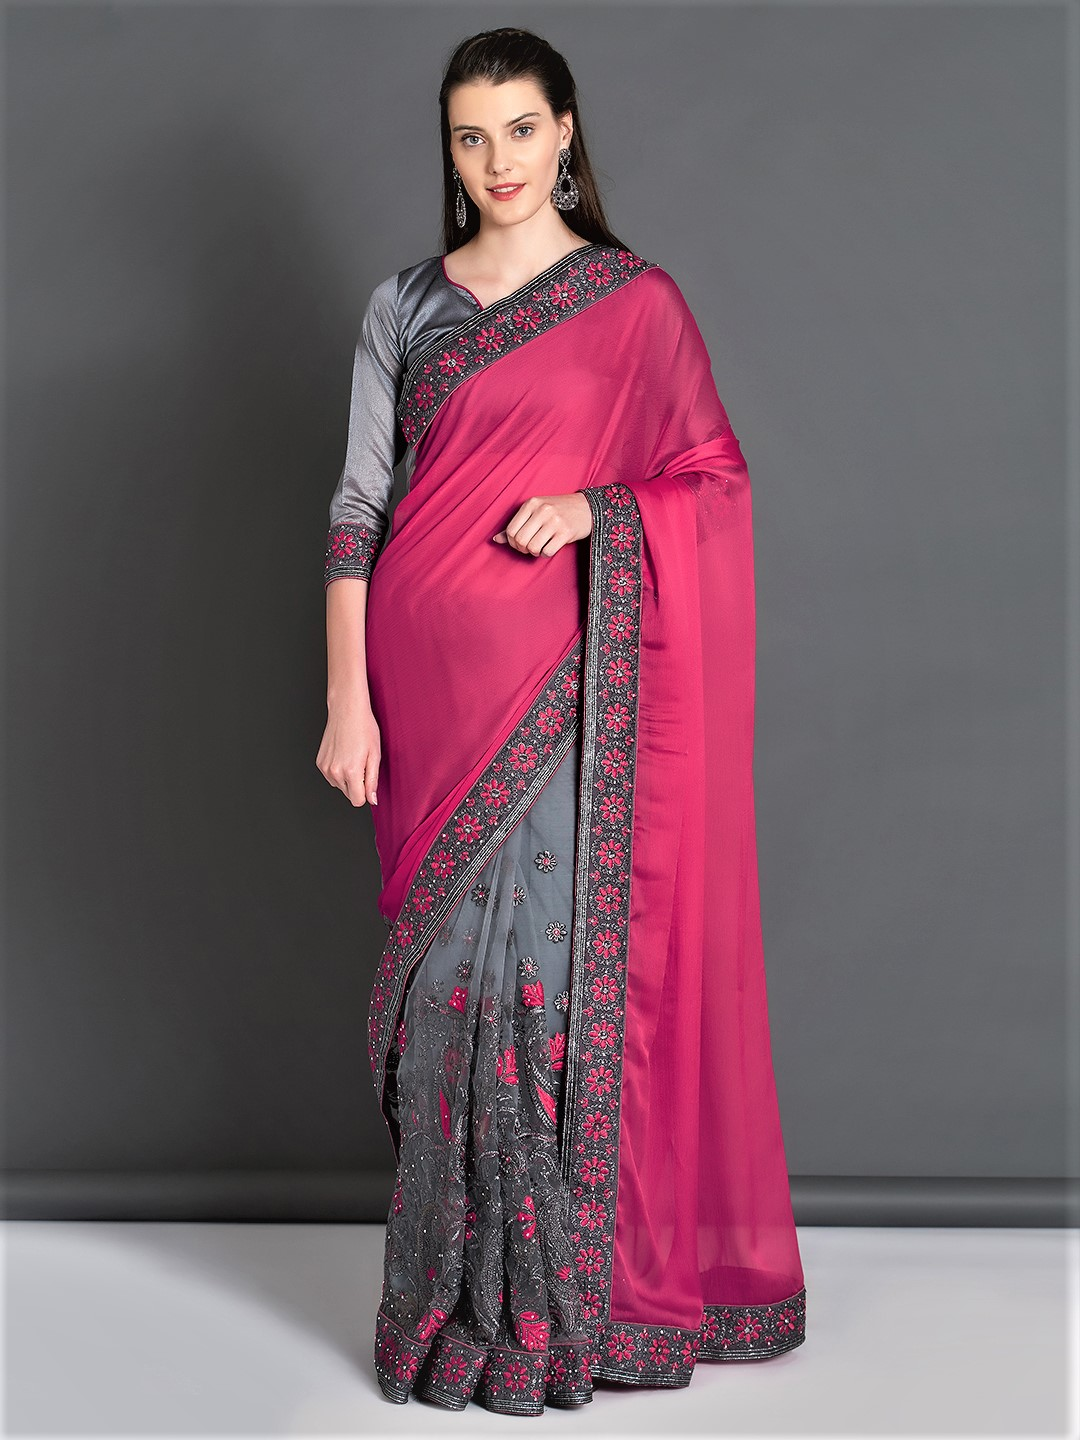 Mitera Pink & Grey Pure Georgette Embroidered Saree Price in India